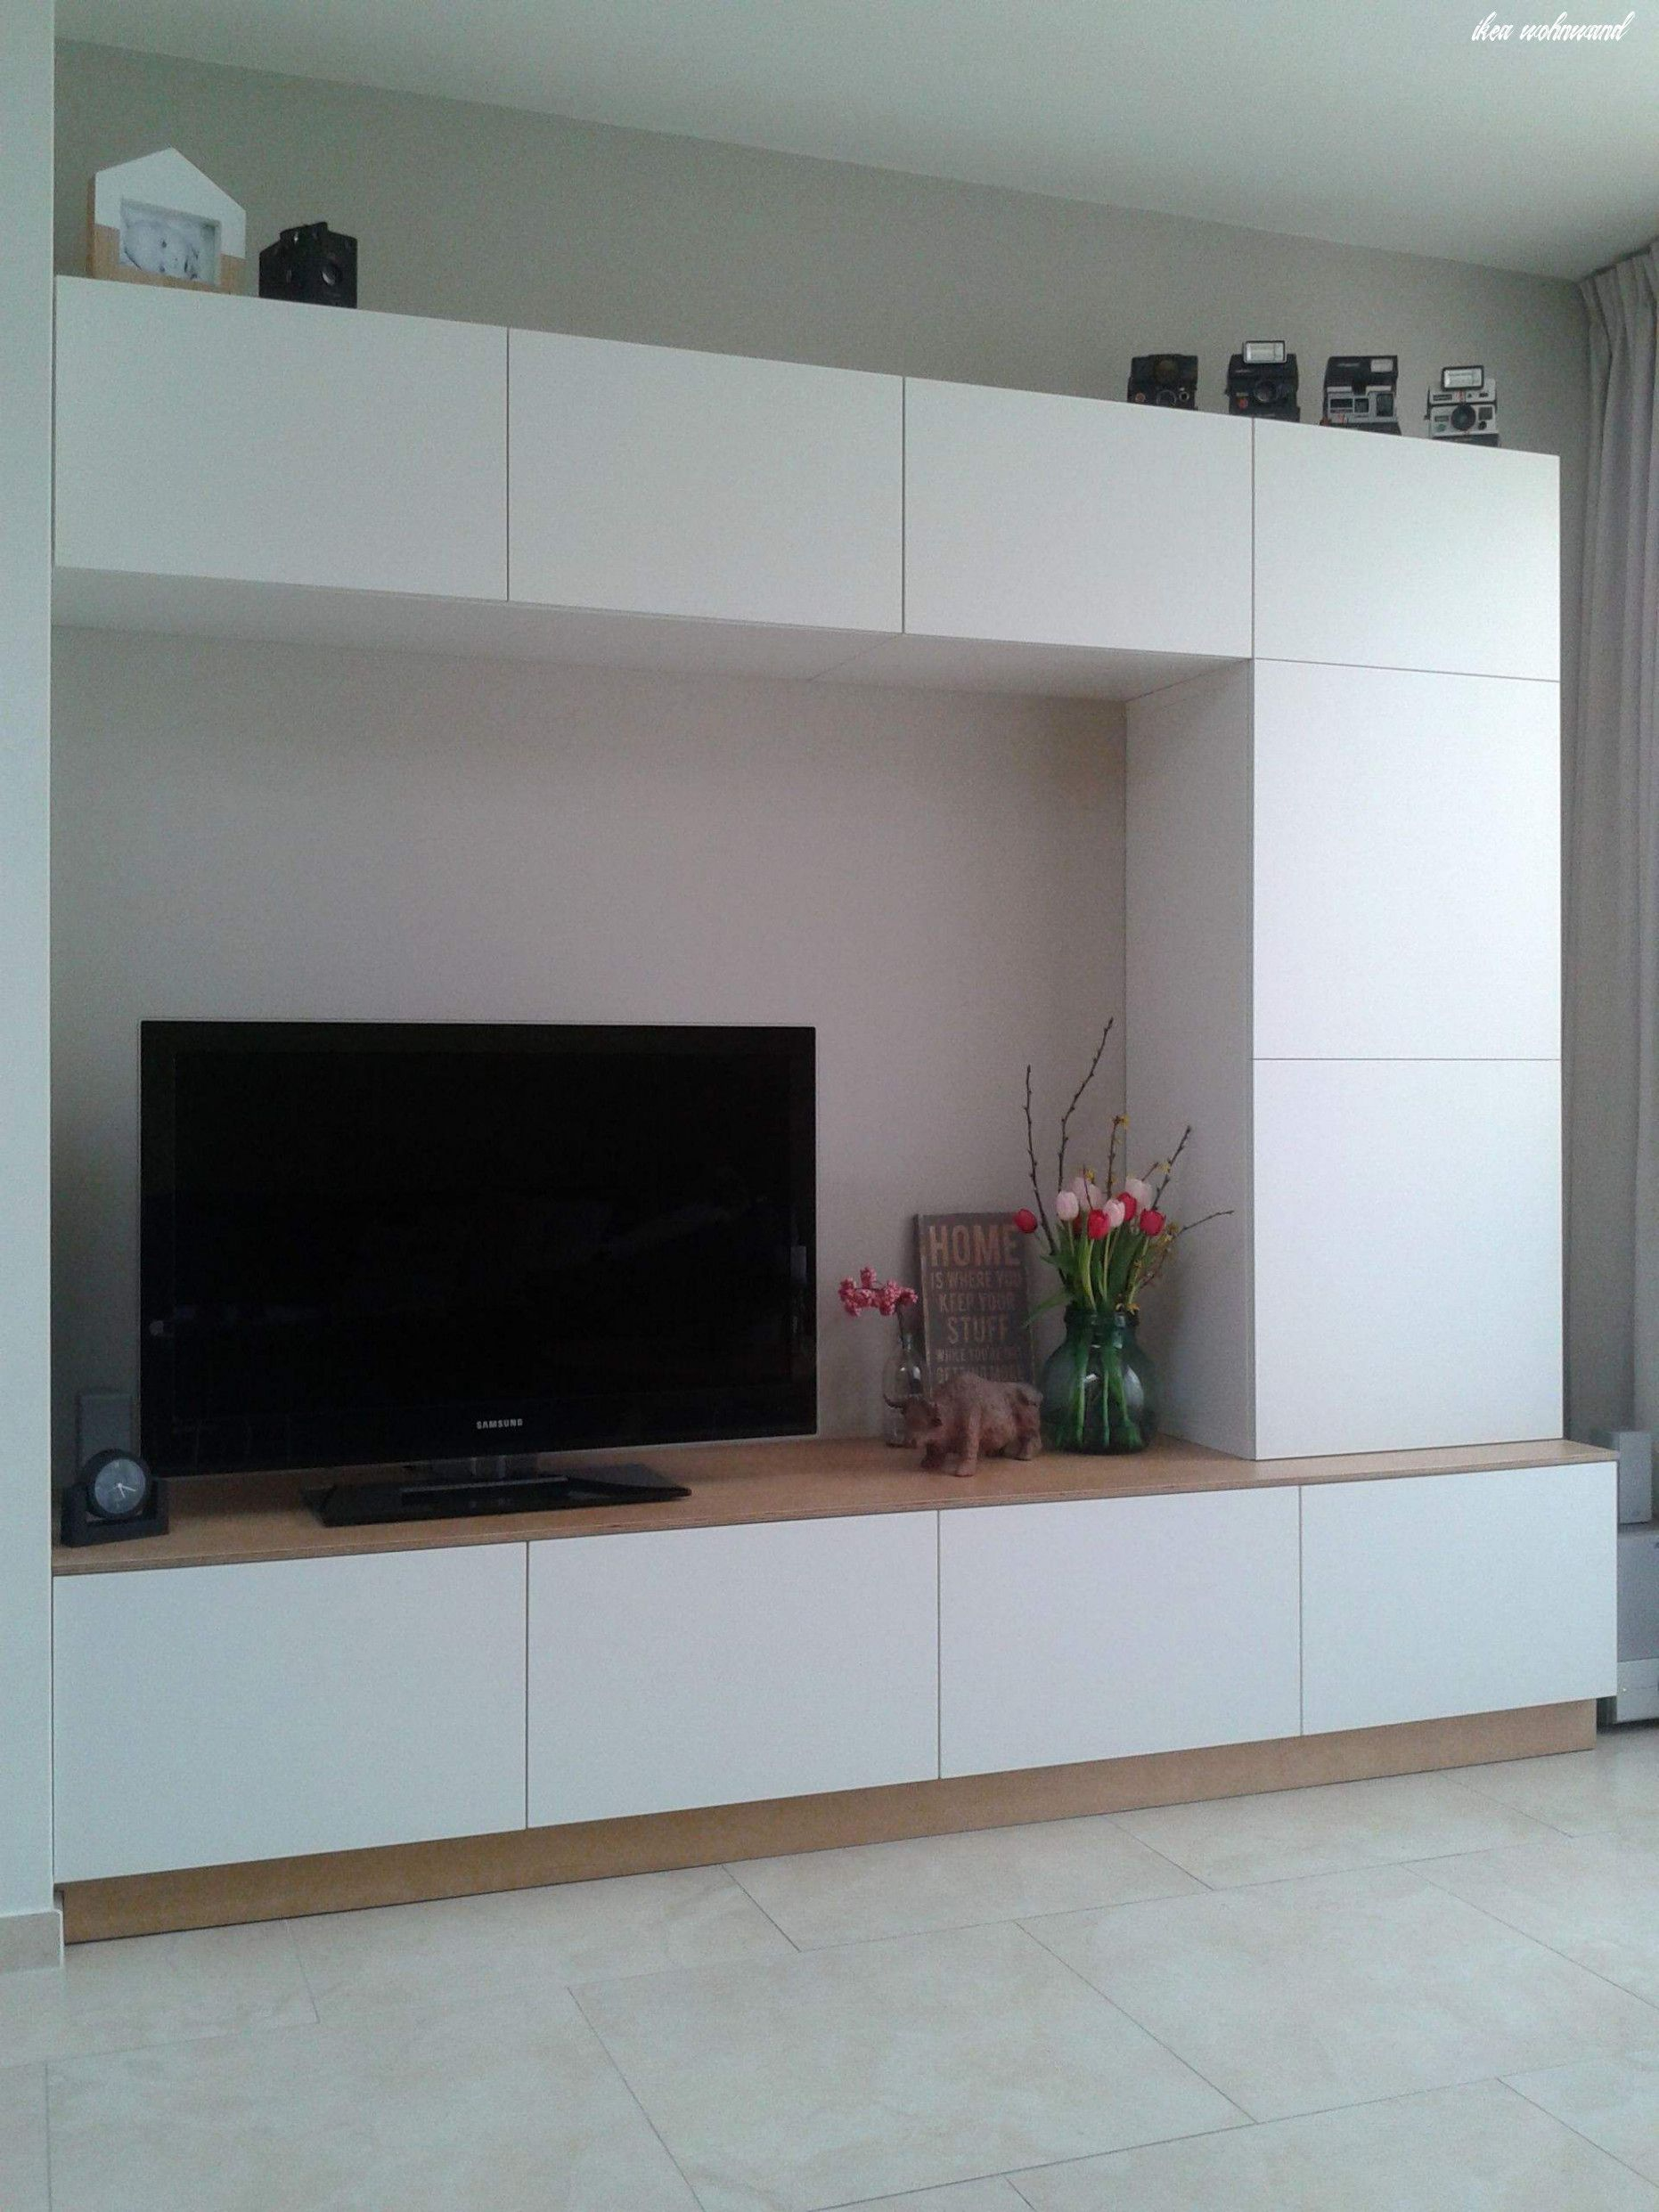 Die Zehn Grunde Warum Touristen Ikea Wohnwand Lieben In 2020 Ikea Hack Living Room Entertainment Wall Units Ikea Entertainment Units